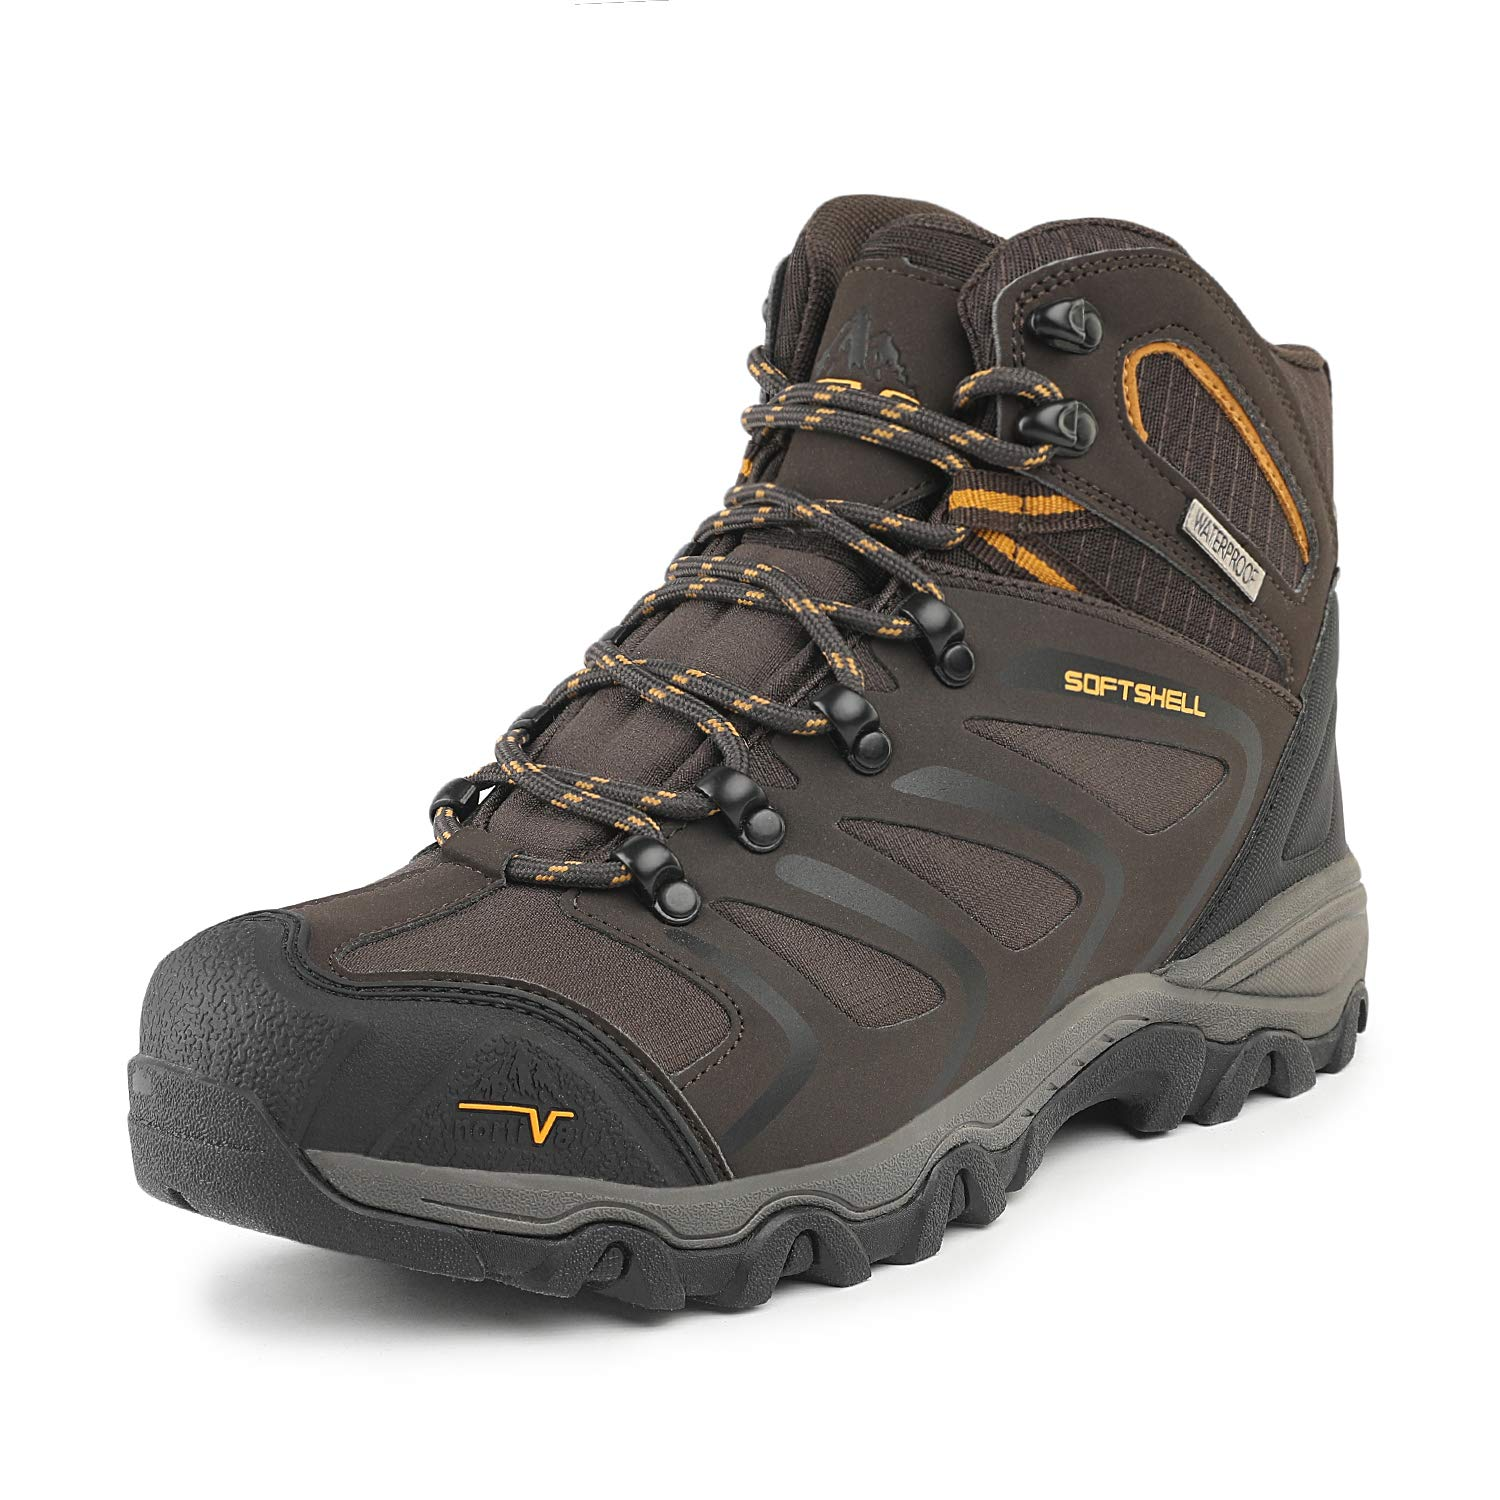 NORTIV 8 Men's 160448 Brown Black Tan Ankle High Waterproof Hiking Boots Outdoor Lightweight Shoes Backpacking Trekking Trails Size 12 M US by NORTIV 8